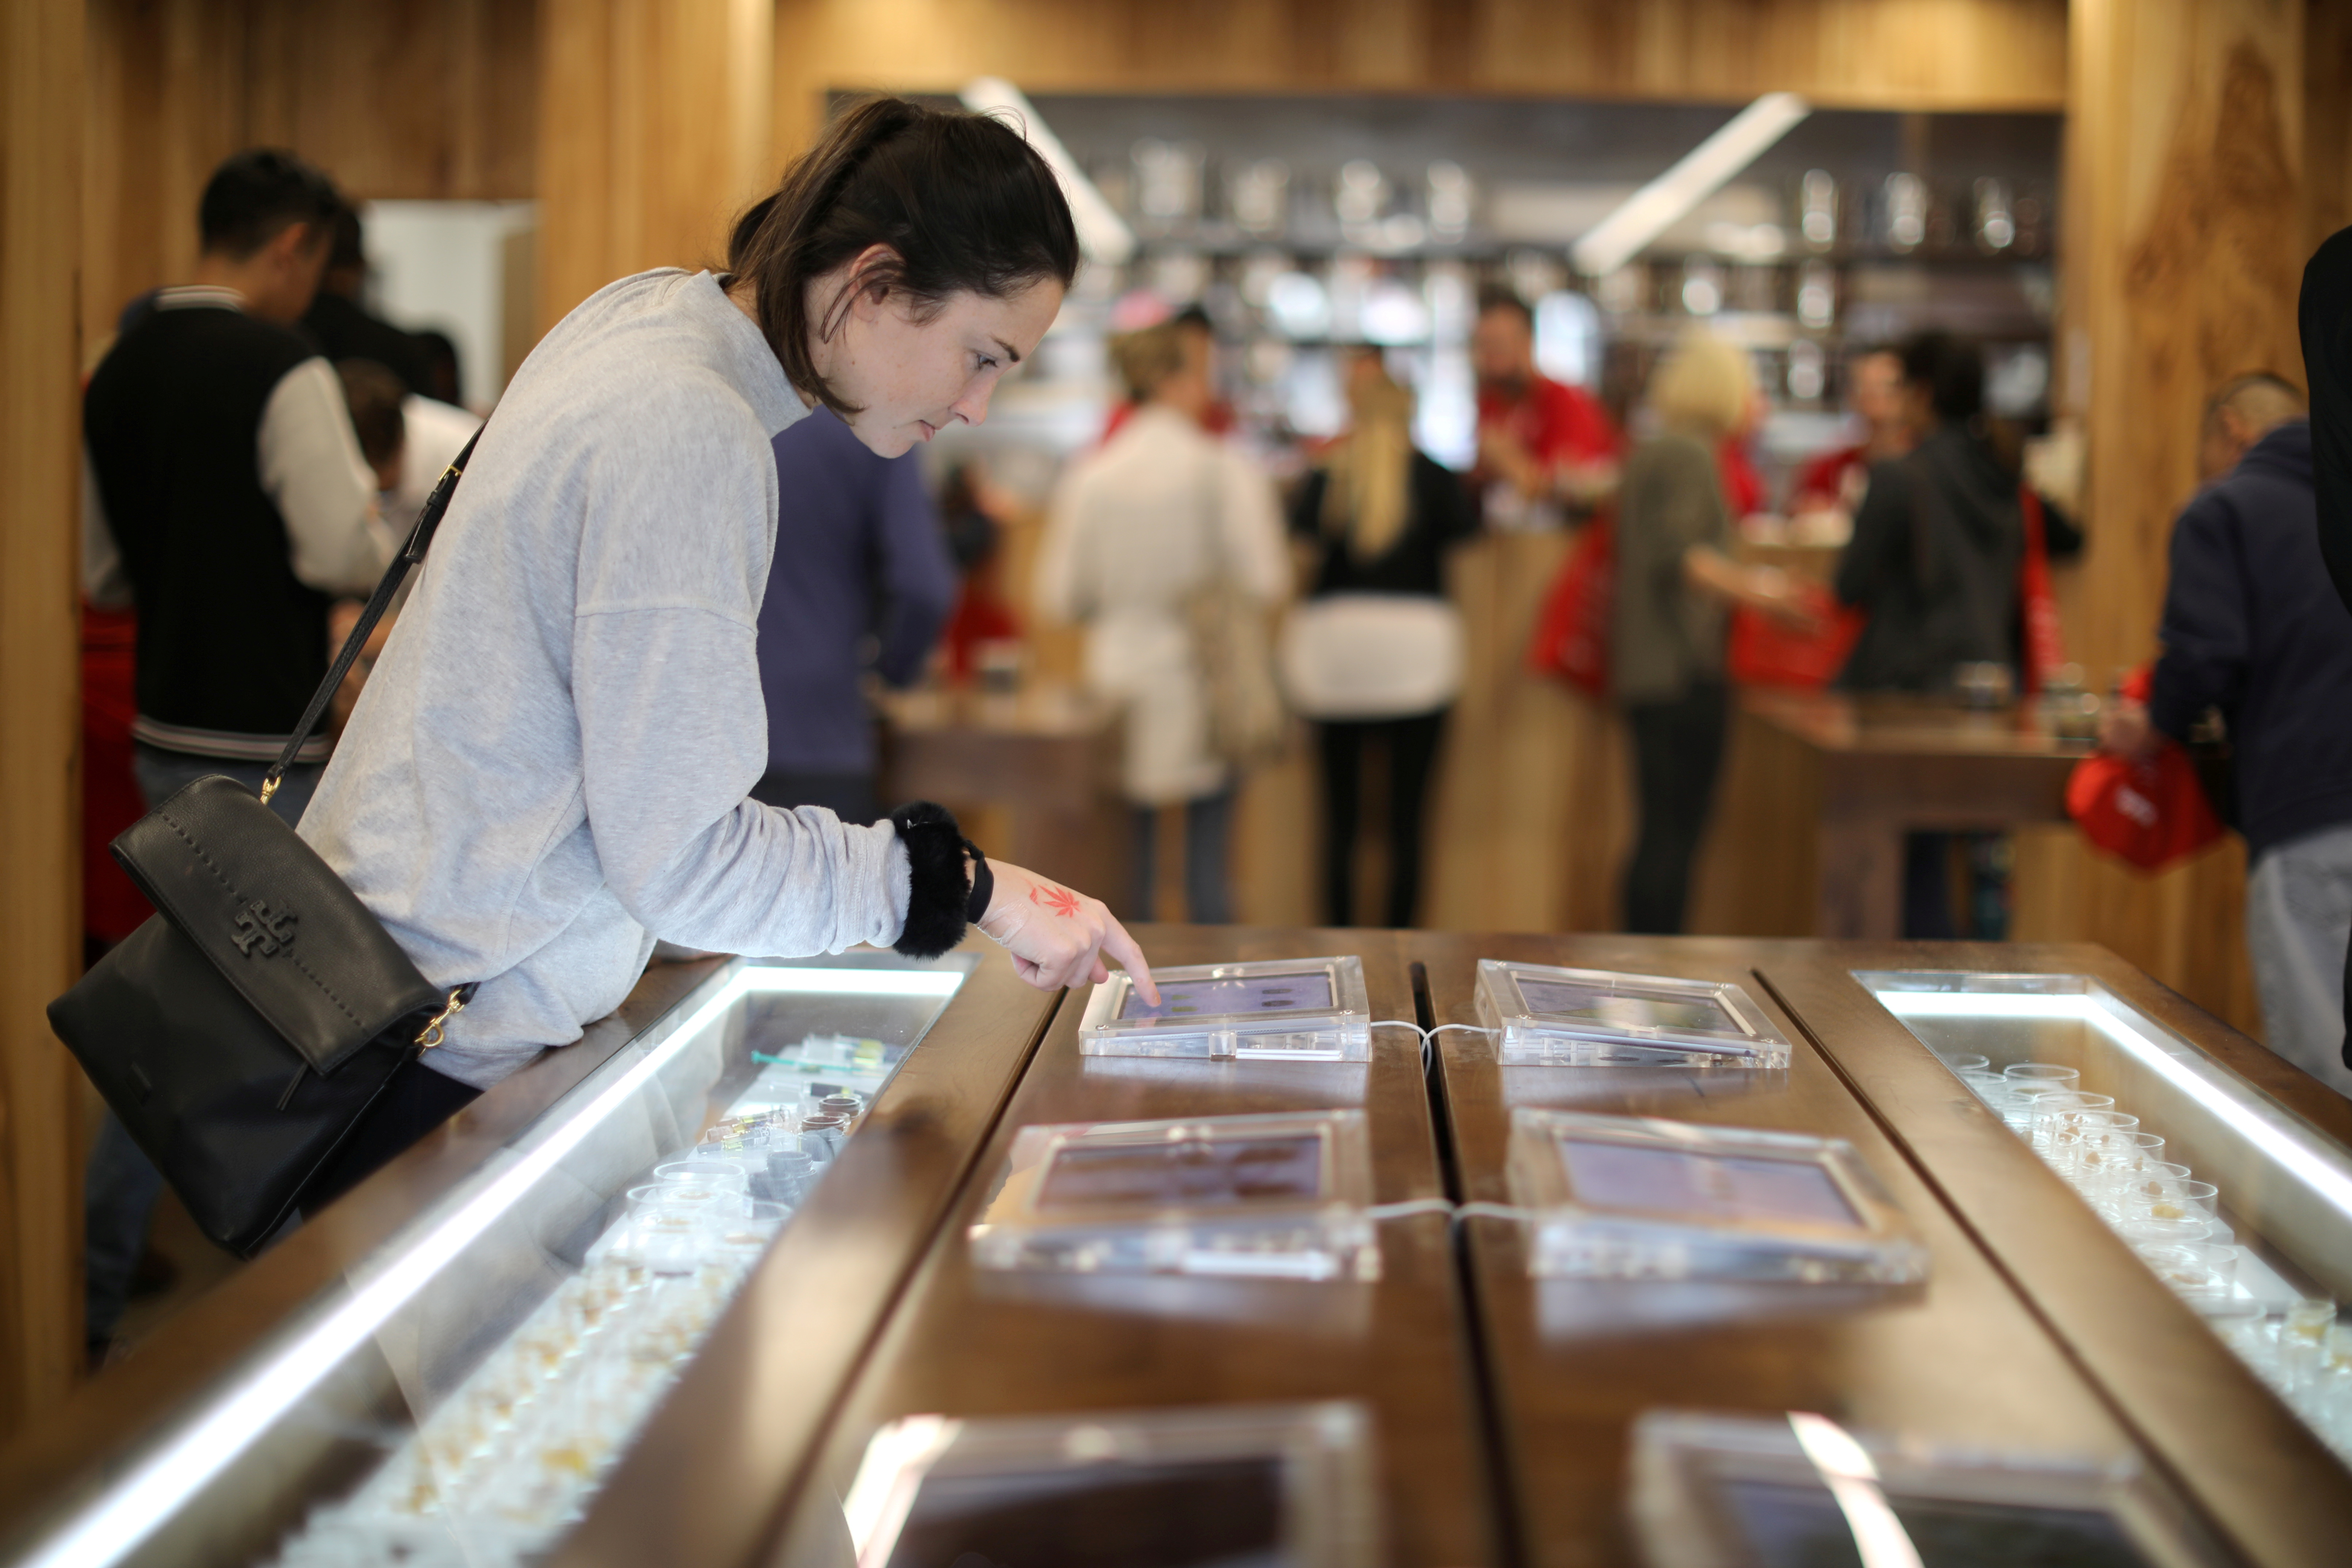 A customer browses screens displaying recreational marijuana products for sale at the MedMen store in West Hollywood, California U.S. January 2, 2018. REUTERS/Lucy Nicholson/File Photo